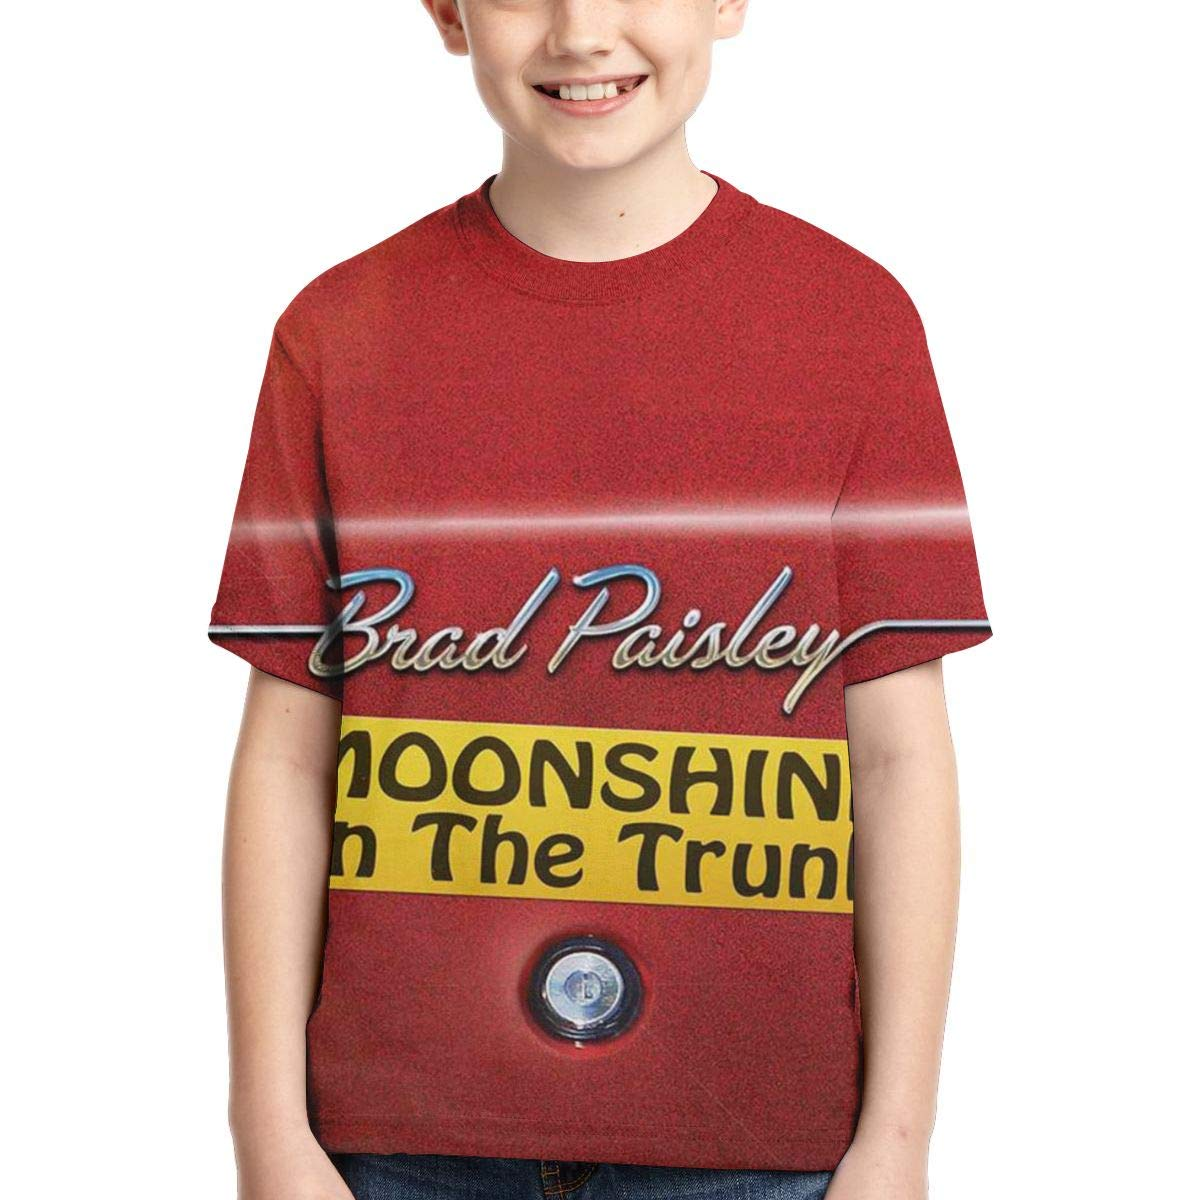 BowersJ Kids Brad Paisley Moonshine in The Trunk Design 3D Printed Short Sleeve T-Shirt for Girls /& Boys Black